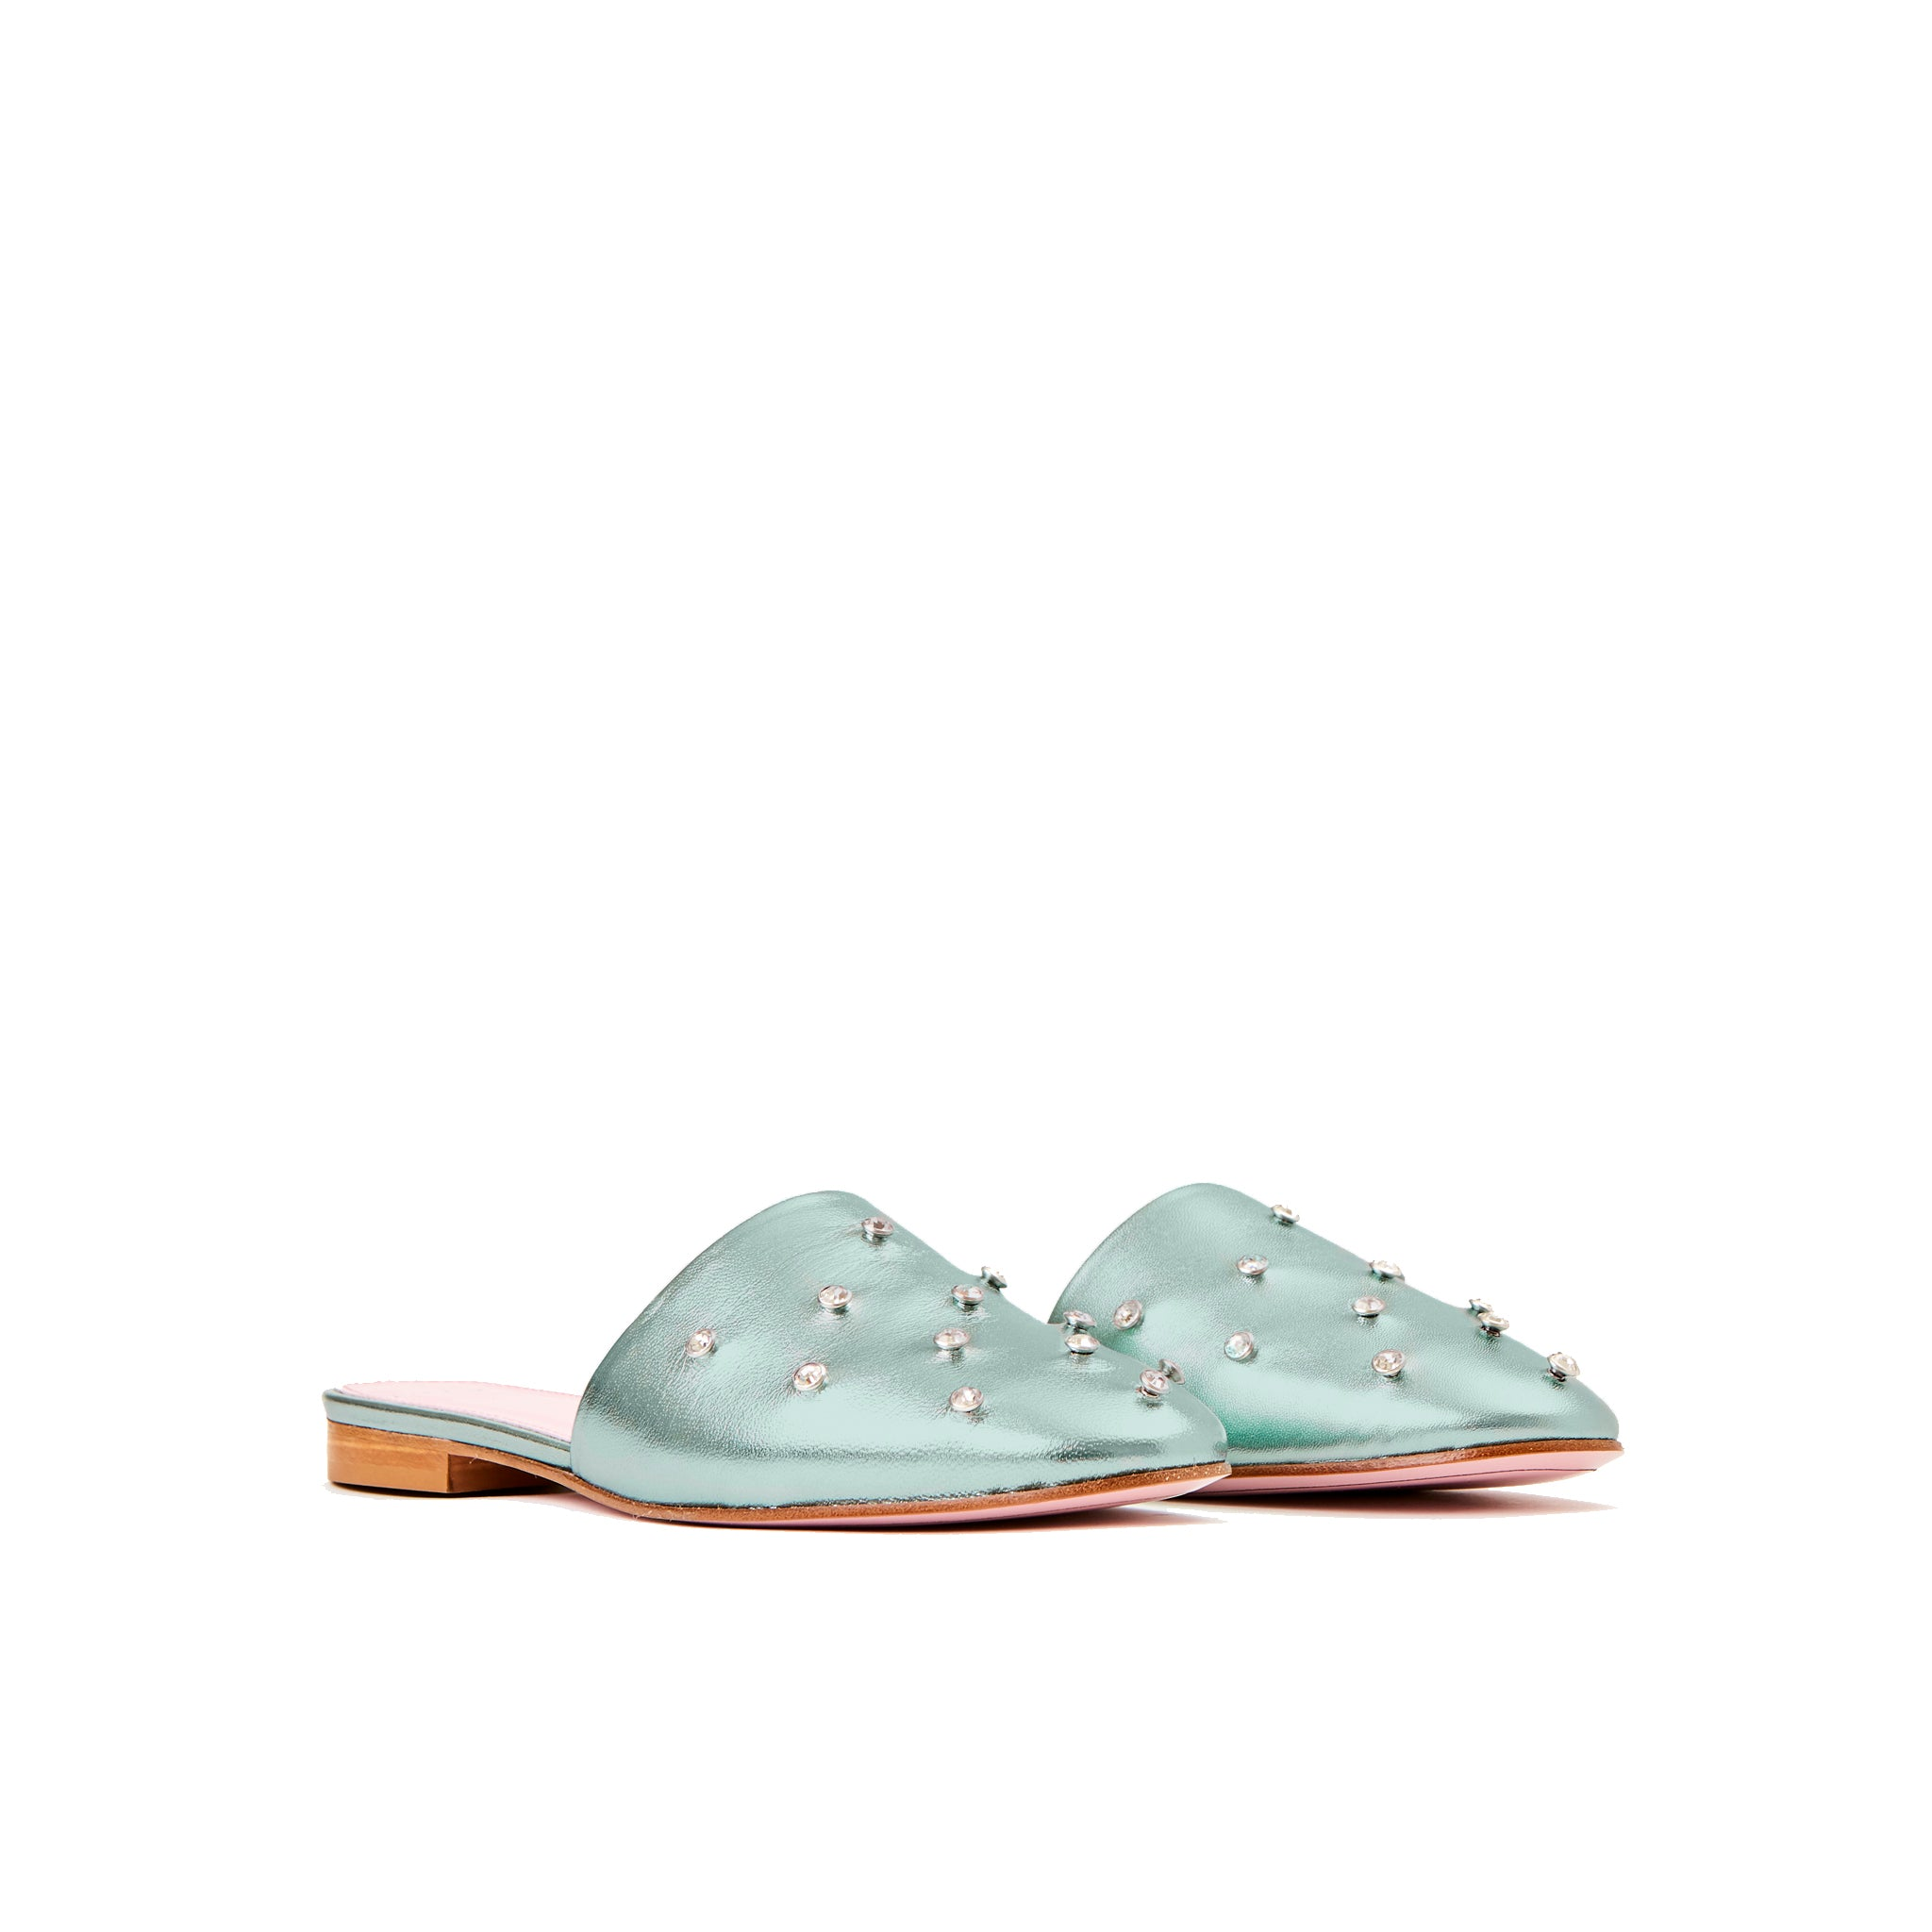 Phare crystal embellsihed slipper in acqua metallic leather 3/4 view